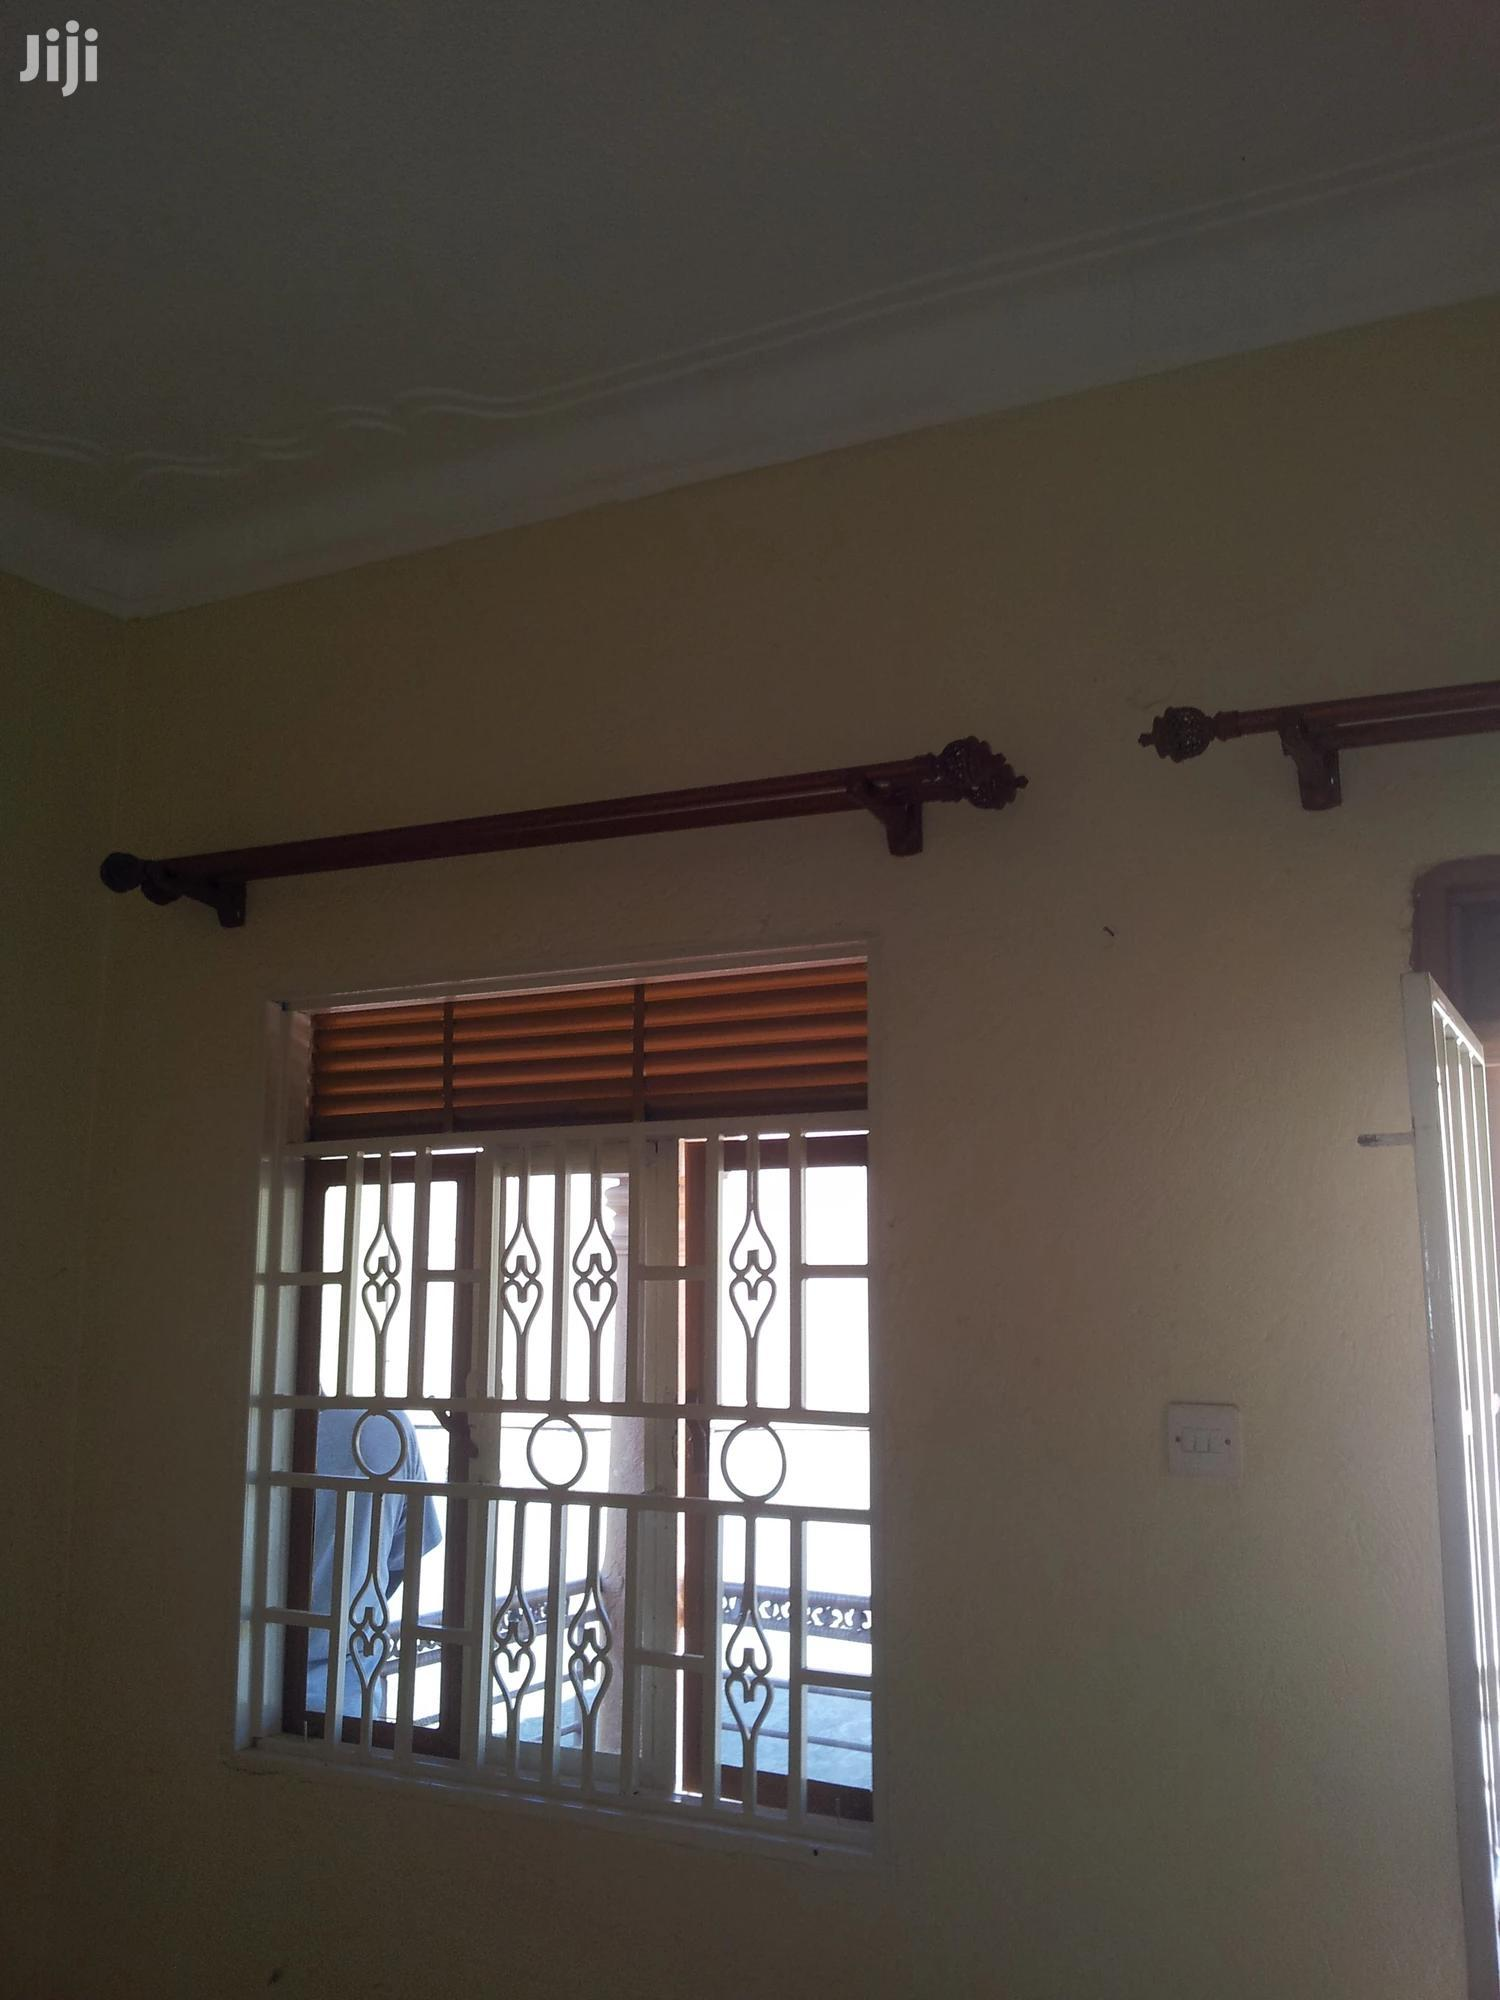 2 Bedroom House For Rent At Mpererwe   Houses & Apartments For Rent for sale in Kampala, Central Region, Uganda